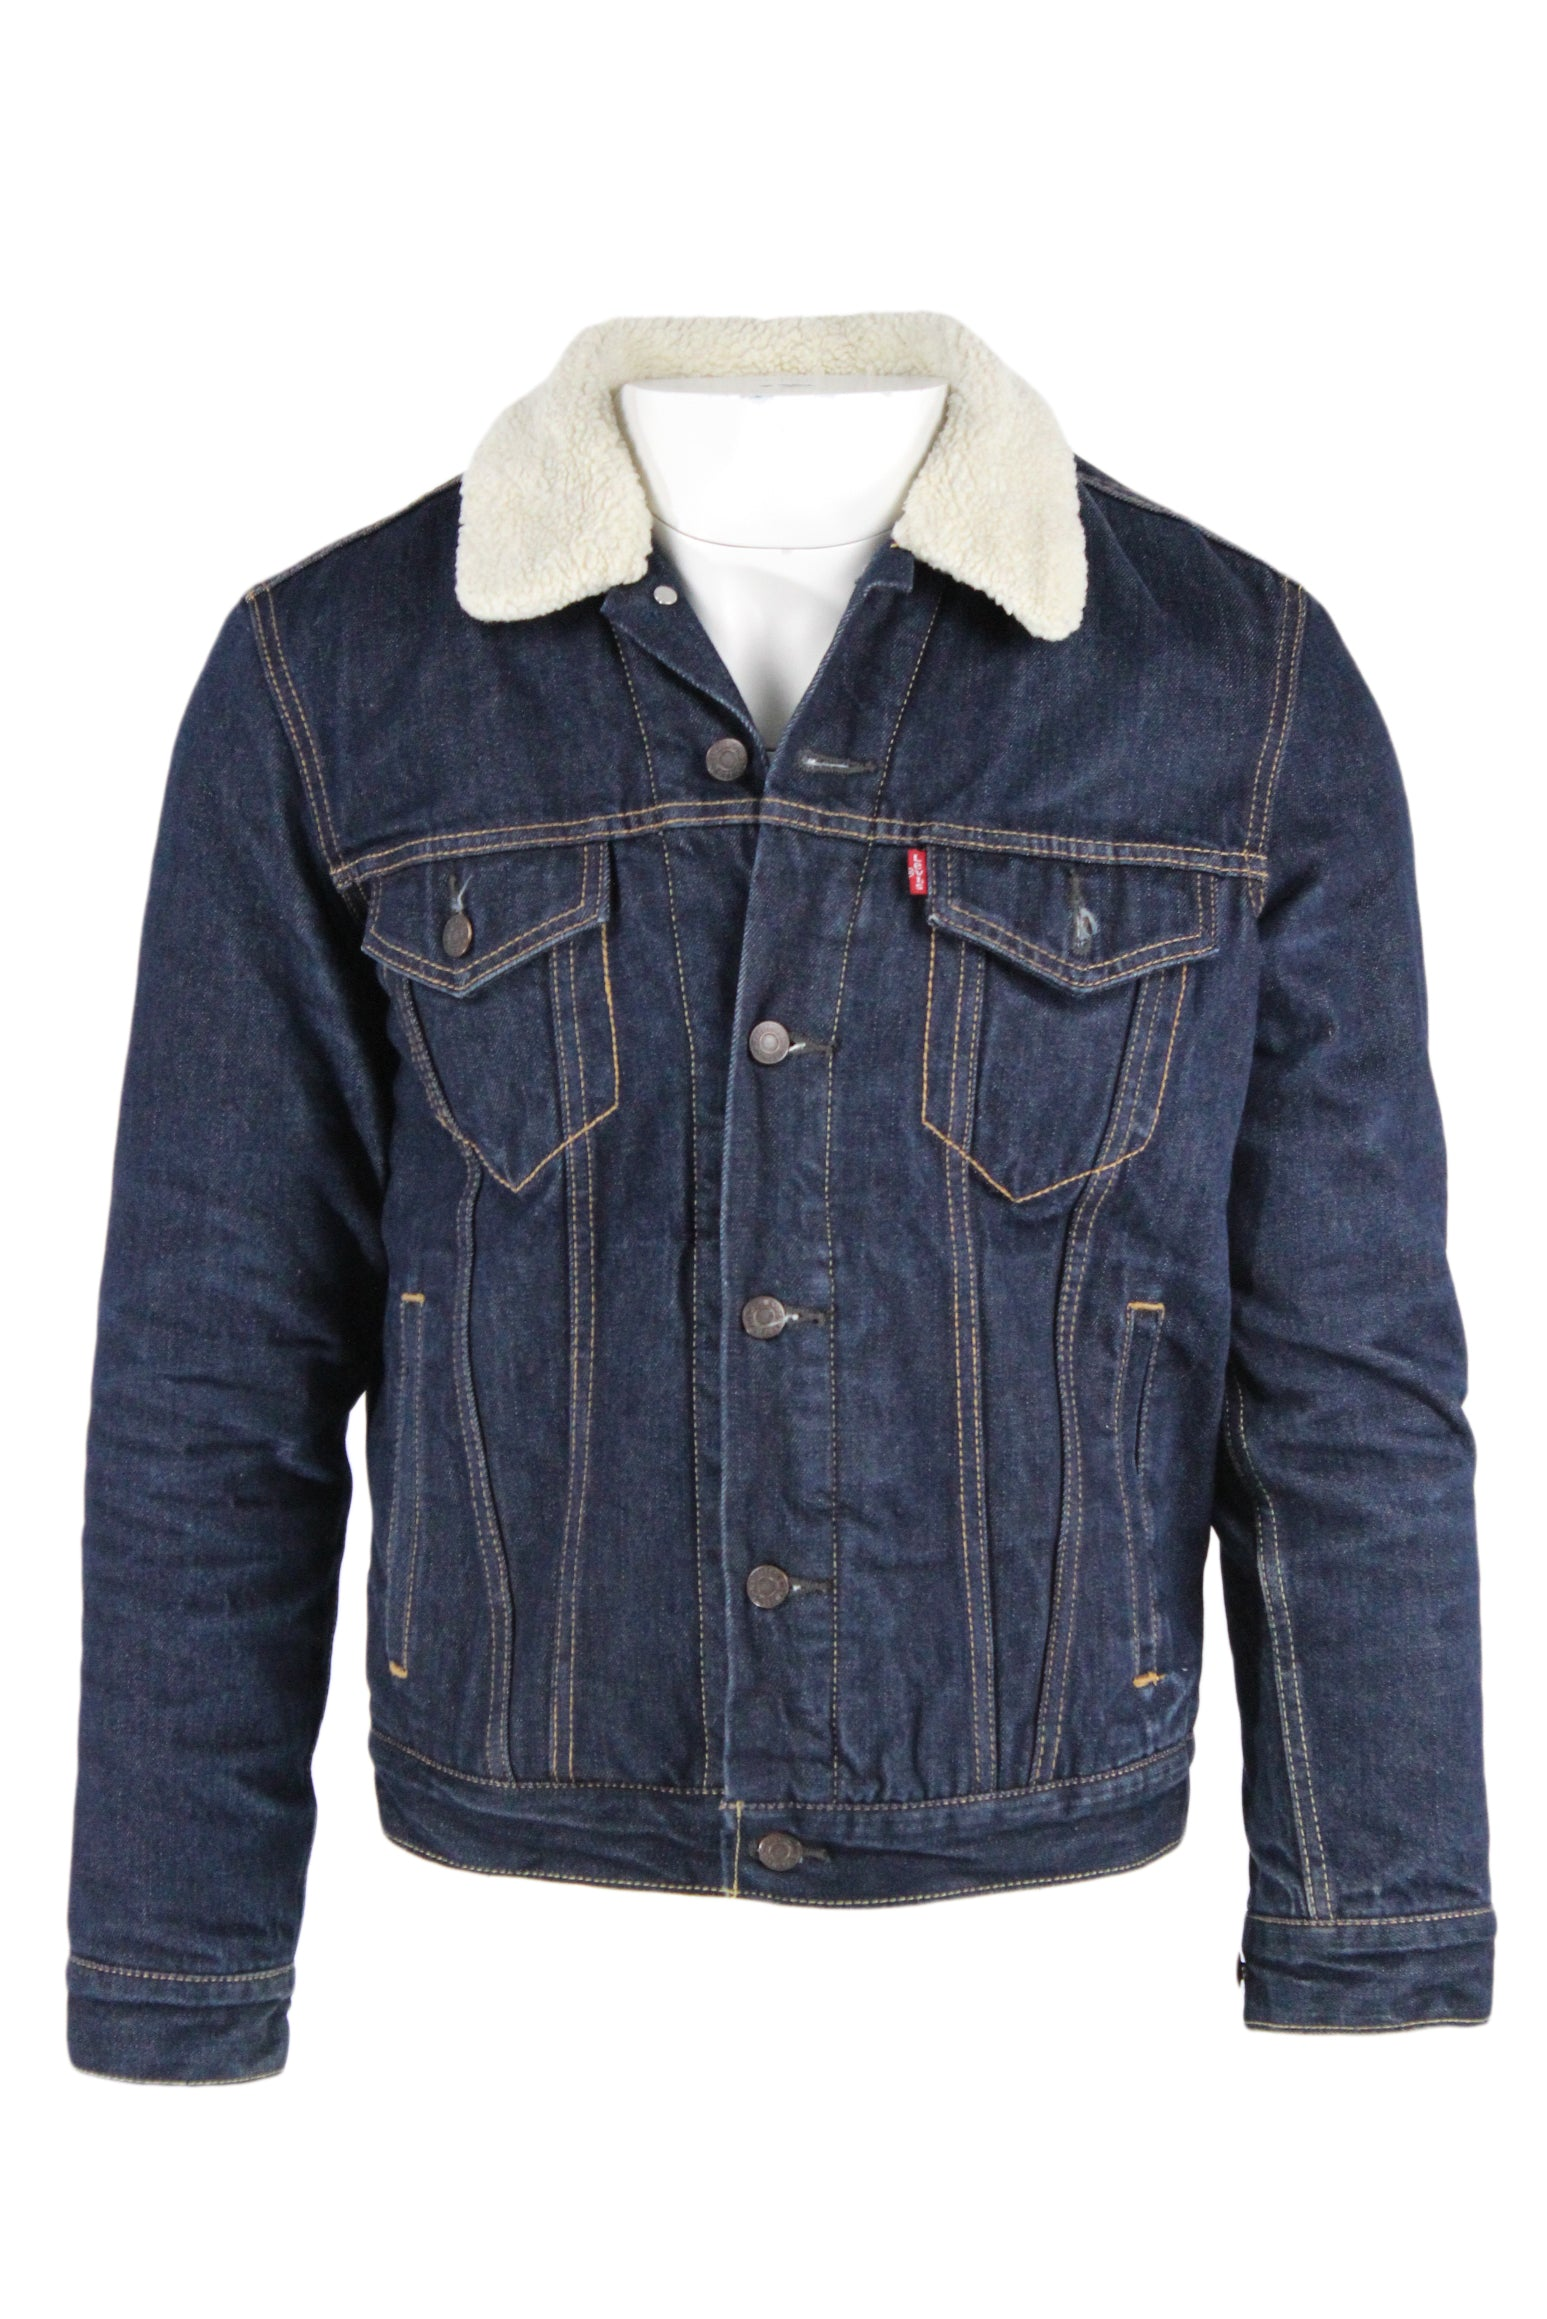 levi's indigo denim jacket with faux sherpa lining. features cream faux sherpa body lining and collar with lightly-filled, lined sleeves. classic 4-pocket front with adjustable waist tabs and contrast topstitching detail throughout. fitted cut, stamped front button closure.